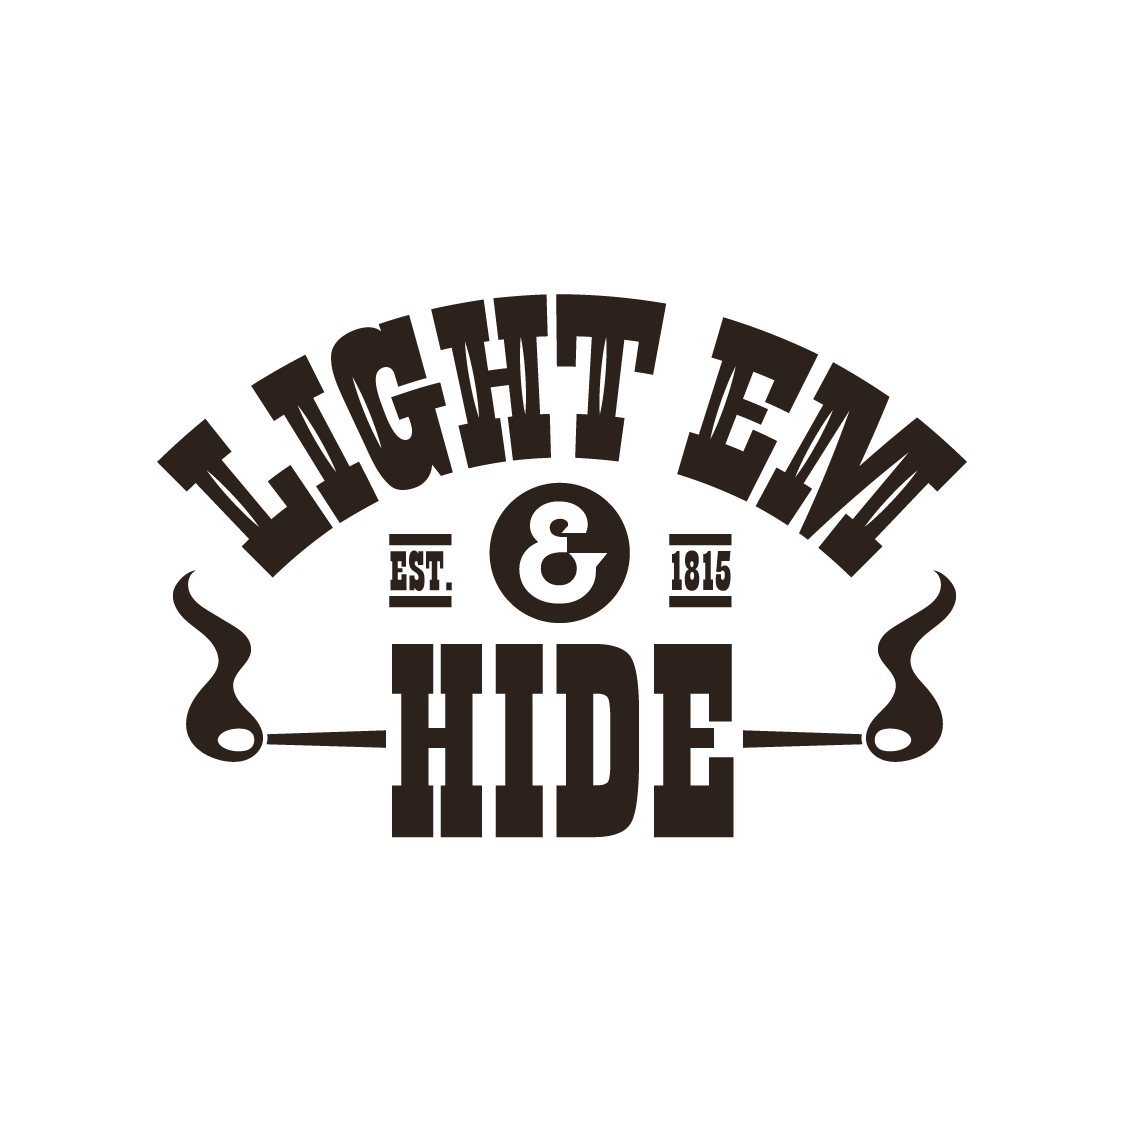 Litem and Hide Podcast Store